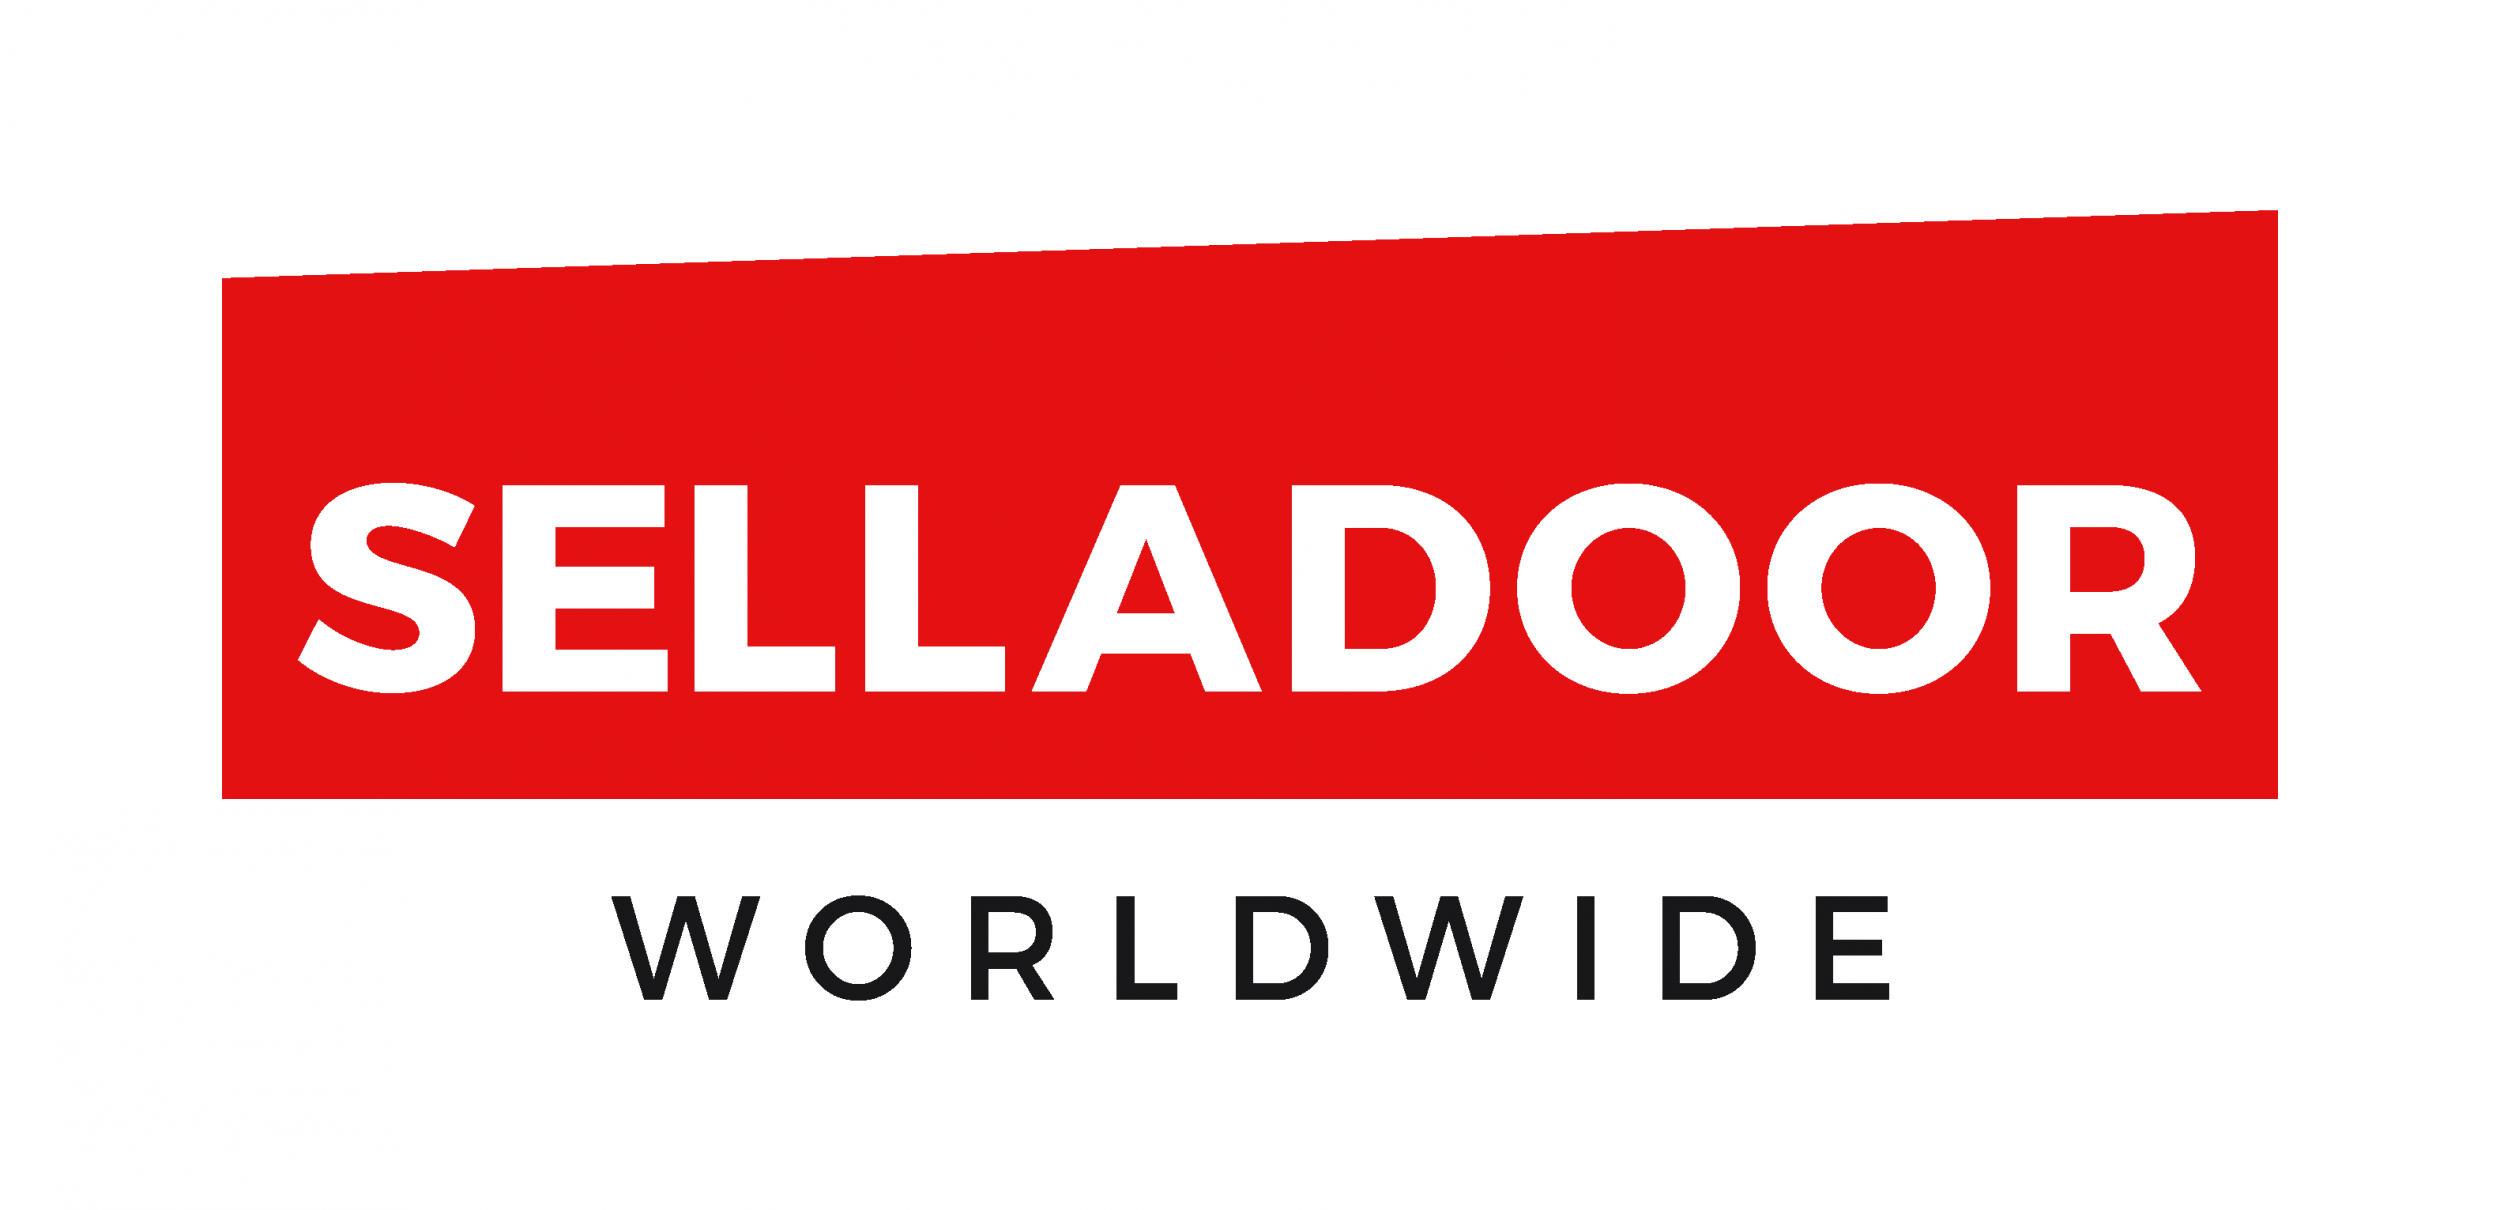 UPDATE: Selladoor Worldwide's response to the Government Support Package of £1.57BN for the Arts sector